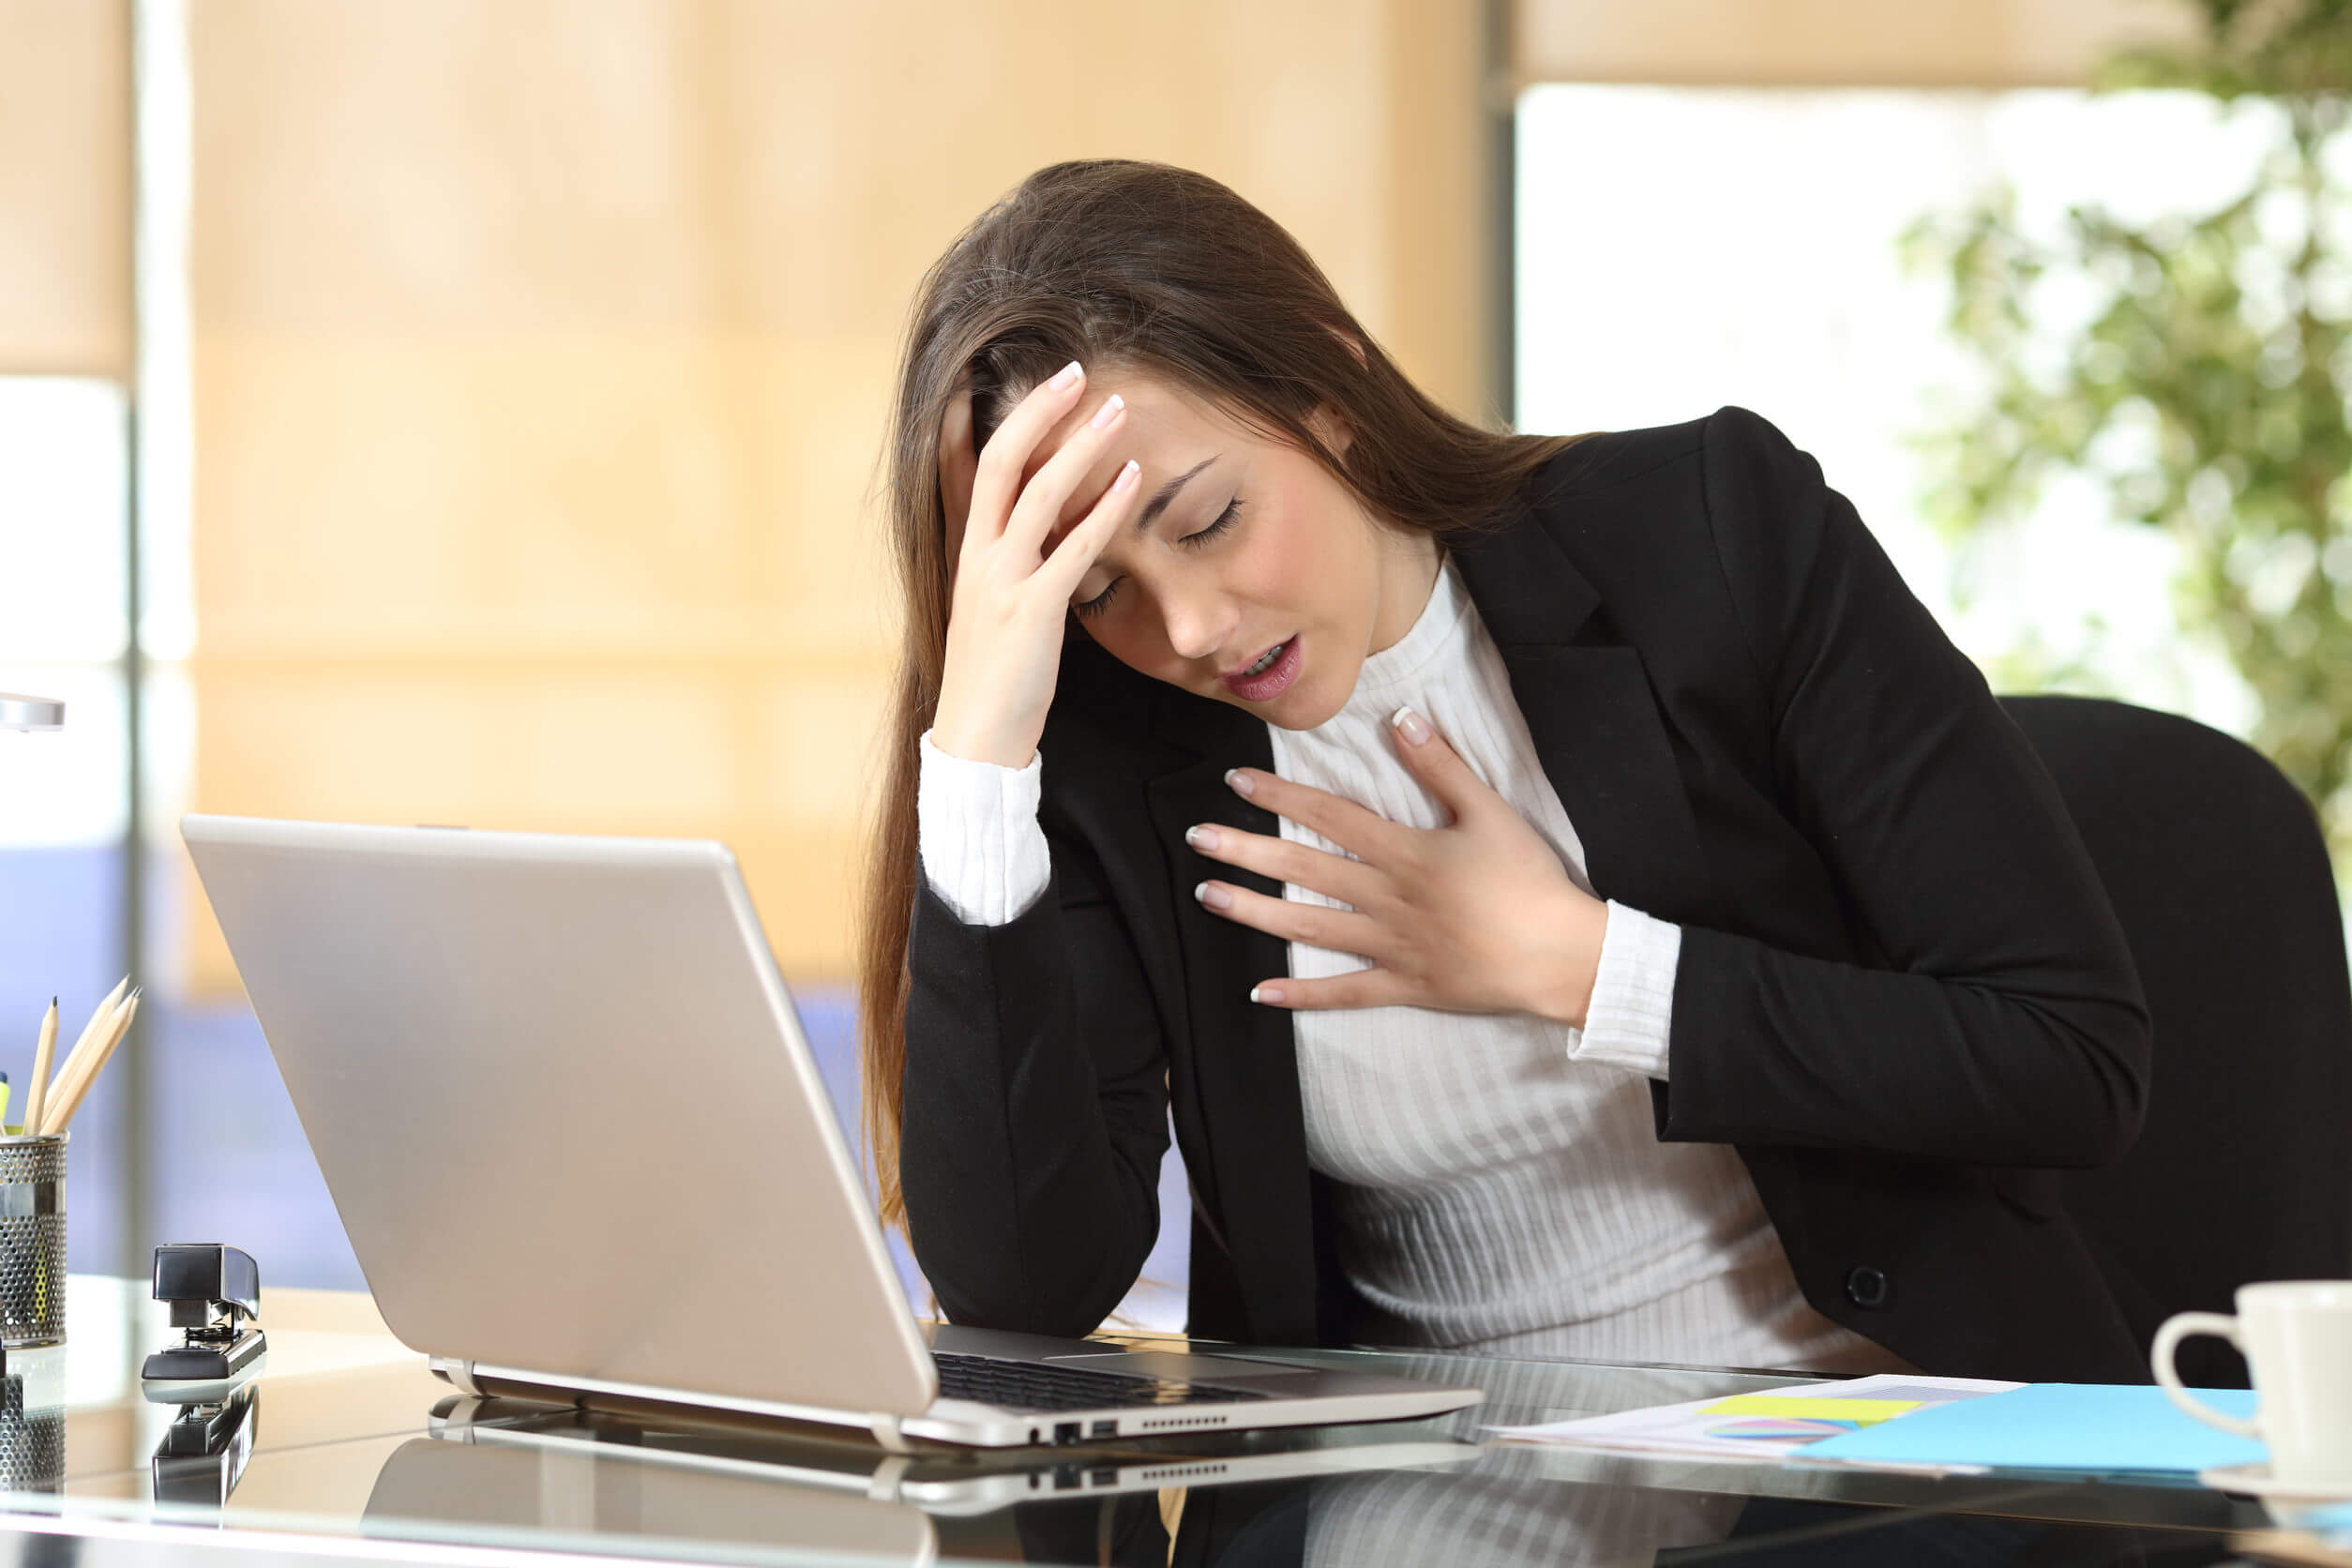 Chest tightness is one of the main symptoms of panic attacks.